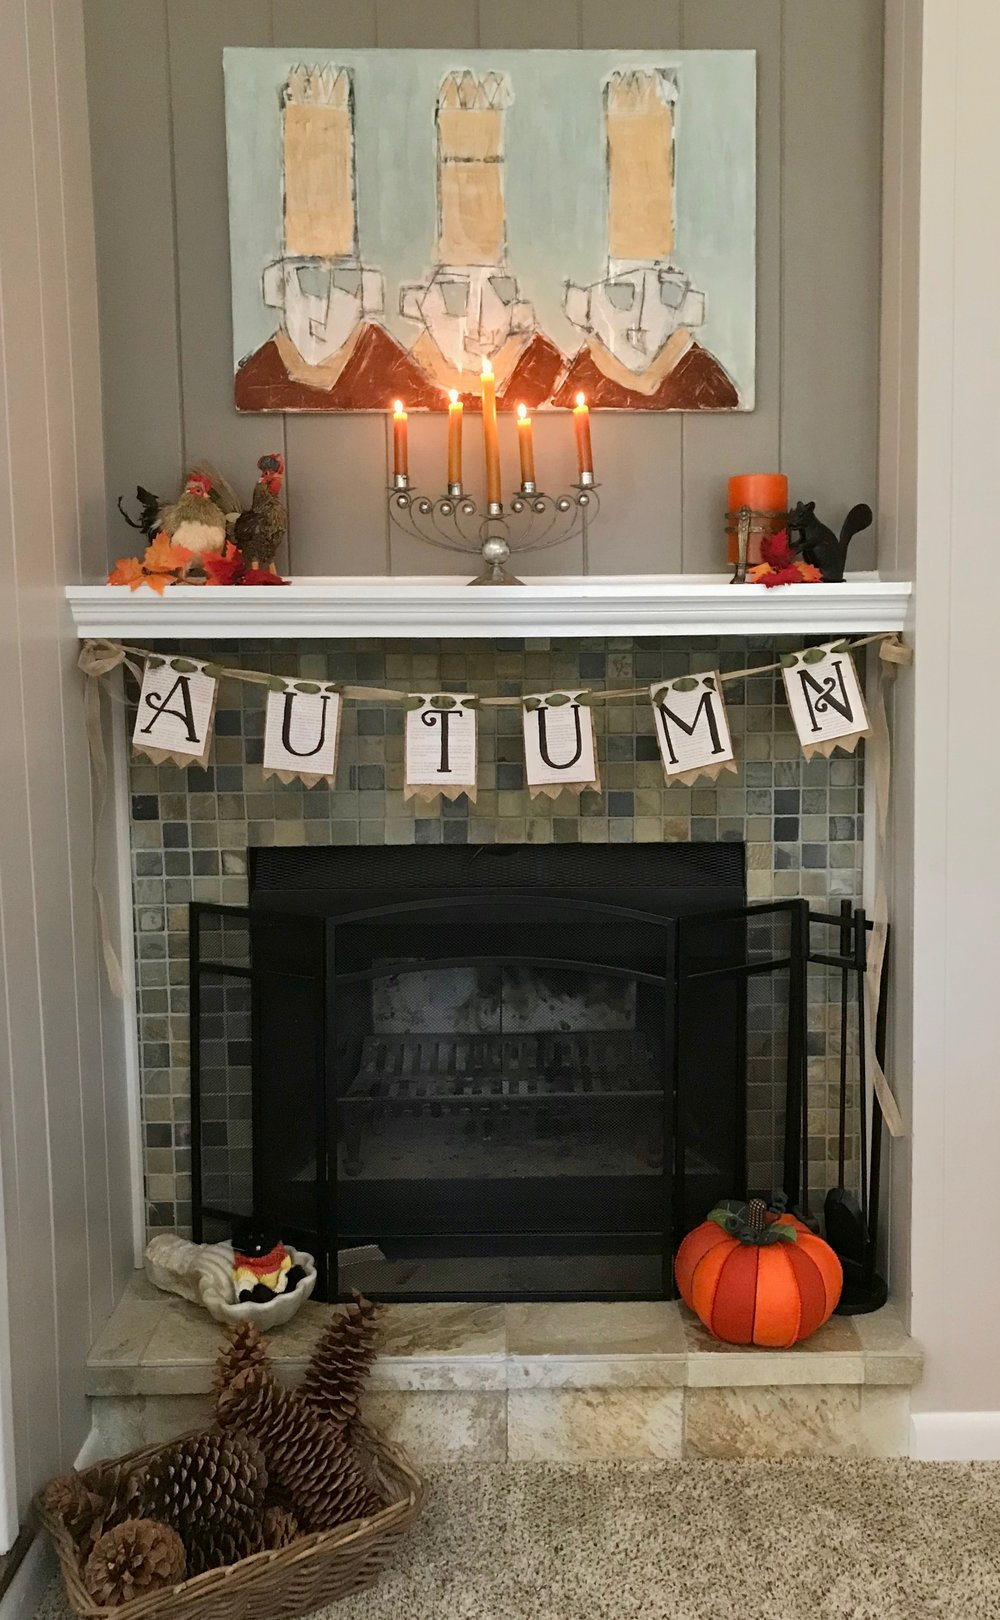 Our fireplace with the Autumn Bunting in place. So cozy!